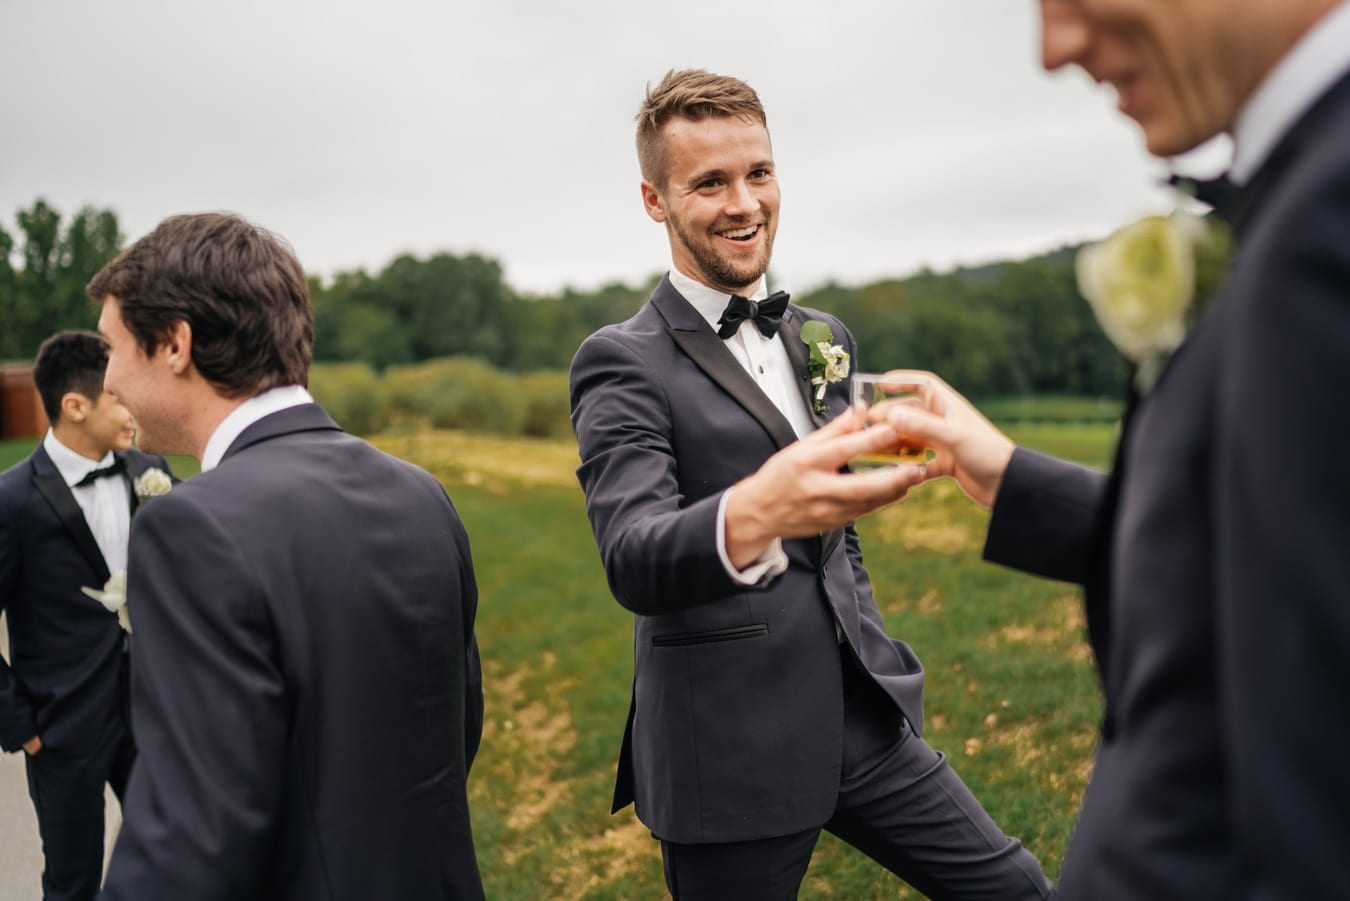 Groomsman hands groom a drink during family portraits and groom smiles.